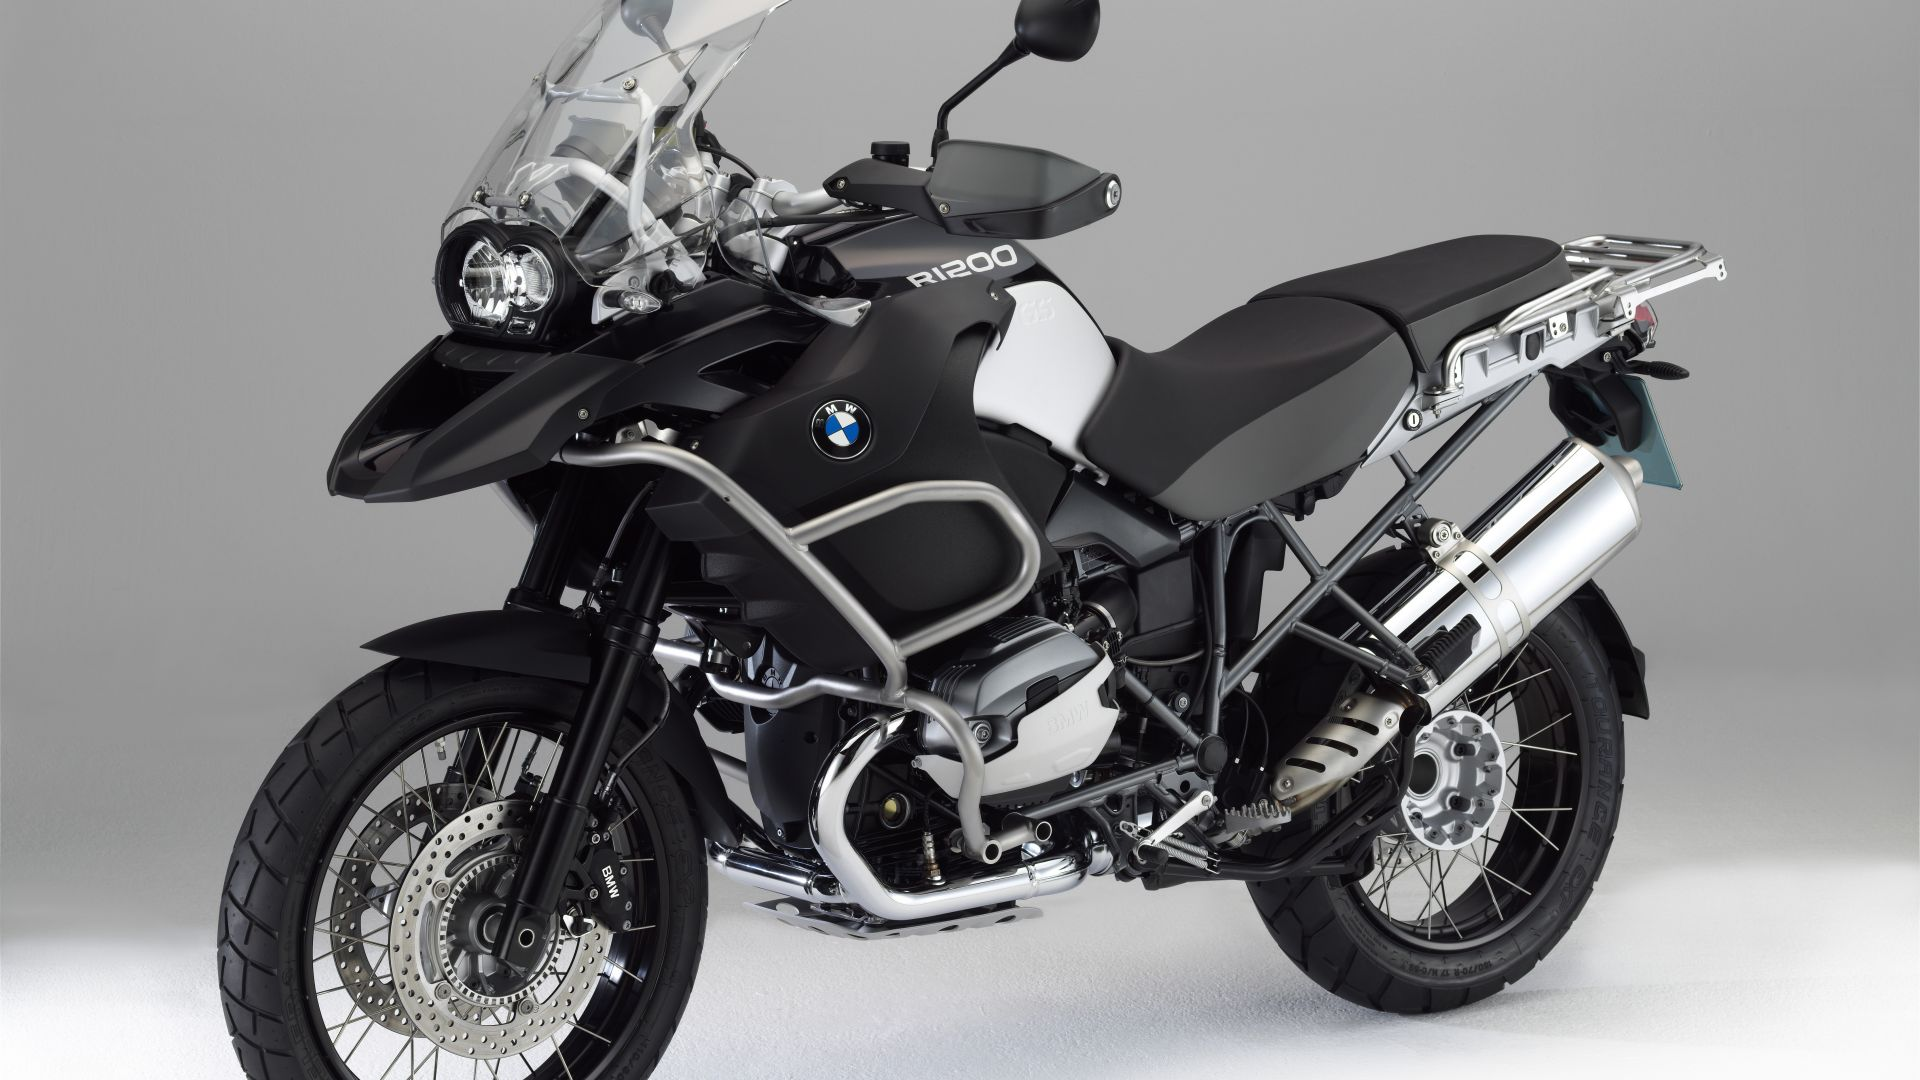 anteprima bmw r 1200 gs adventure triple black. Black Bedroom Furniture Sets. Home Design Ideas